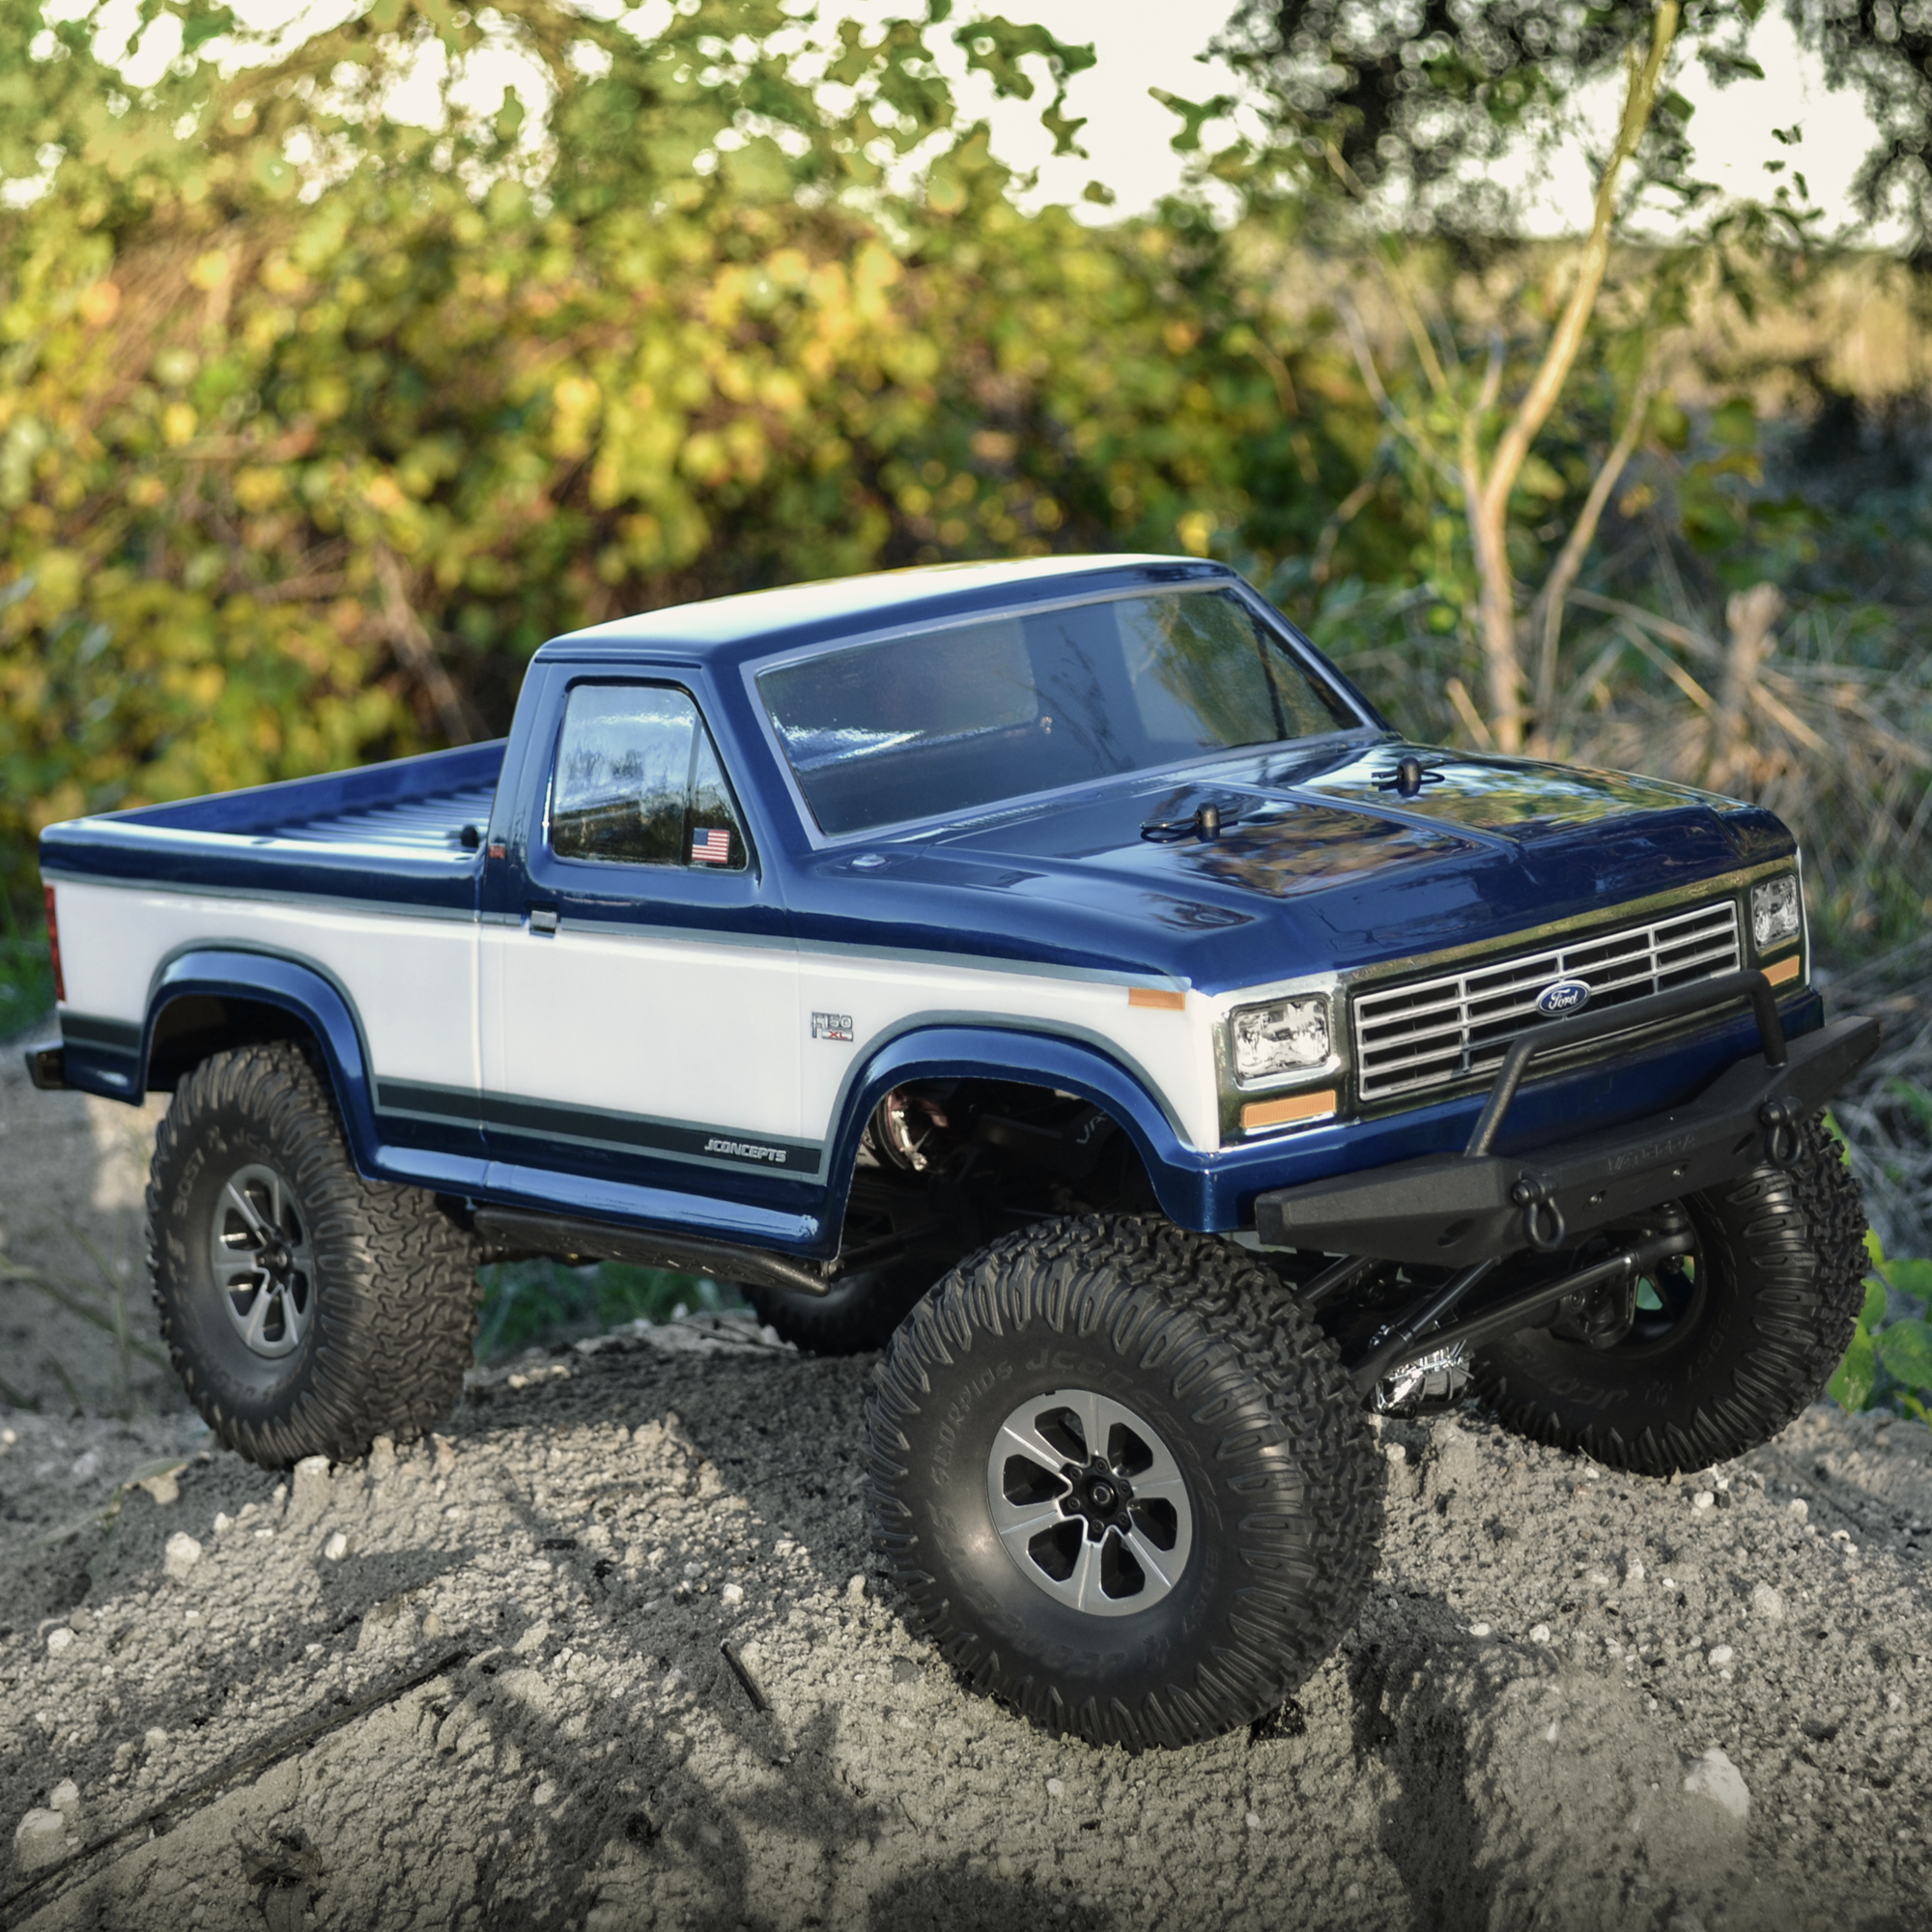 Jconcepts new release 1984 ford f 150 body